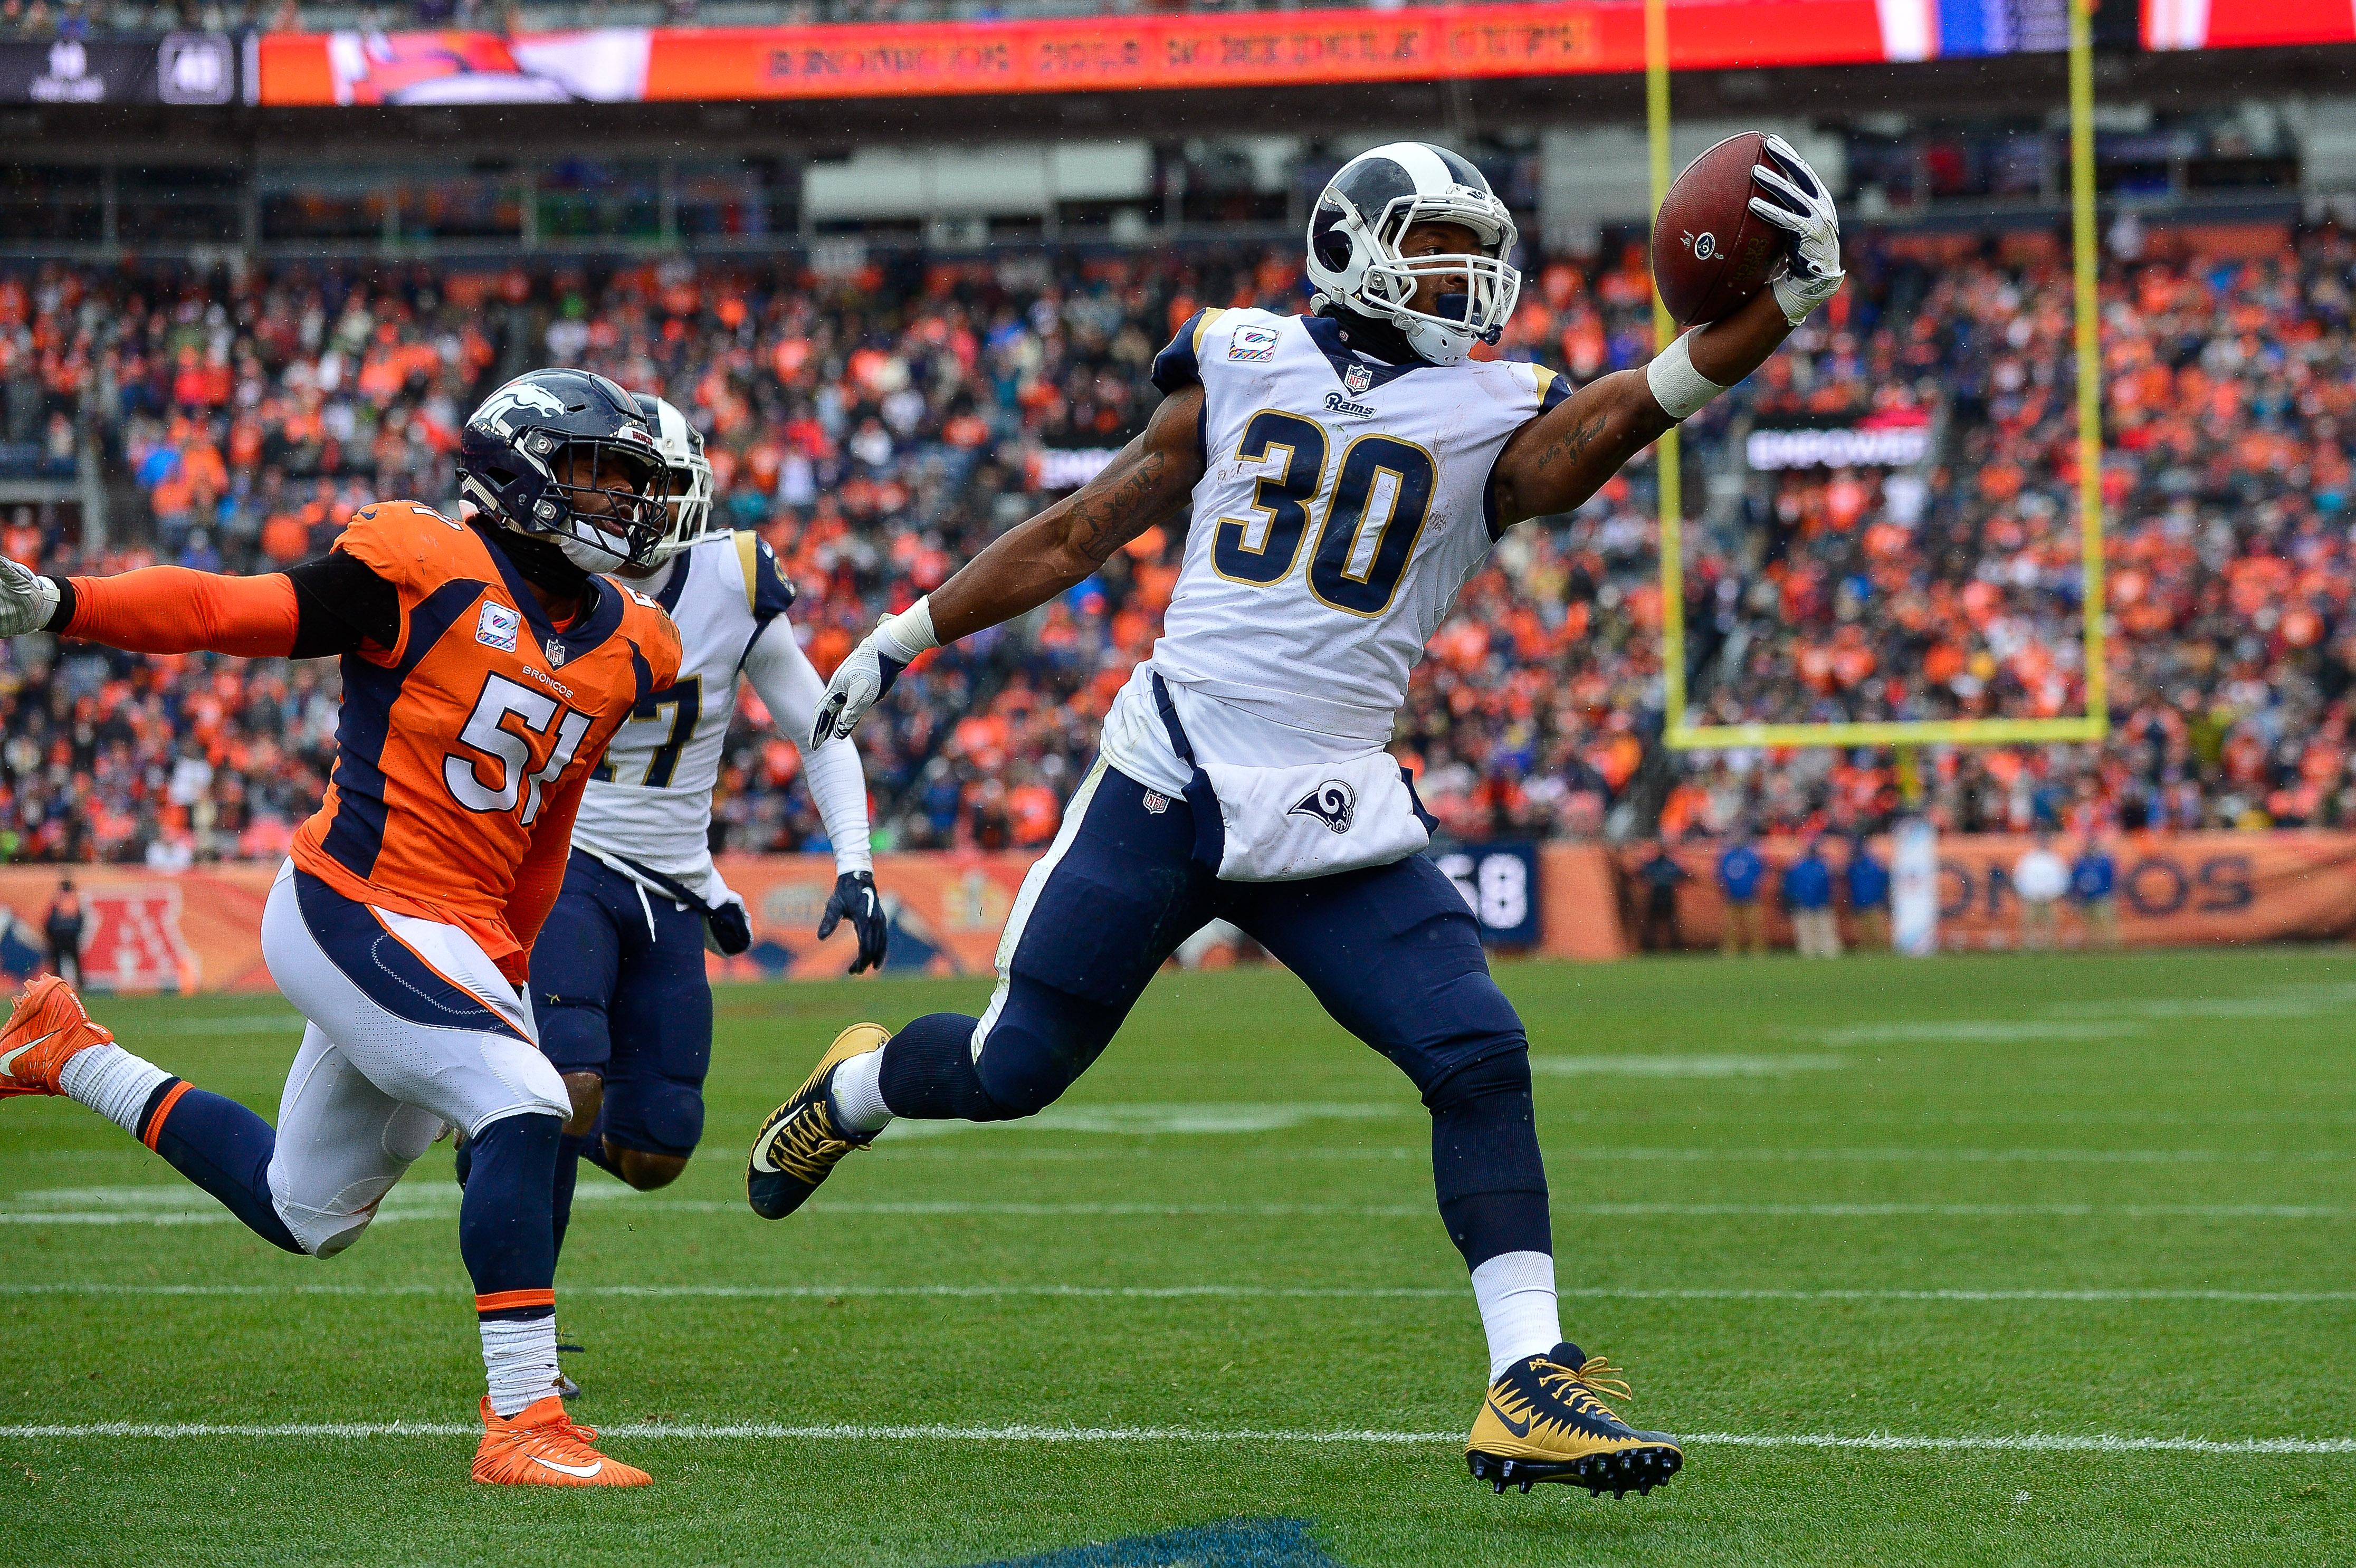 Running back Todd Gurley #30 of the Los Angeles Rams scores a second quarter rushing touchdown as linebacker Todd Davis #51 of the Denver Broncos attempts to tackle him during a game at Broncos Stadium at Mile High on October 14, 2018 in Denver, Colorado.